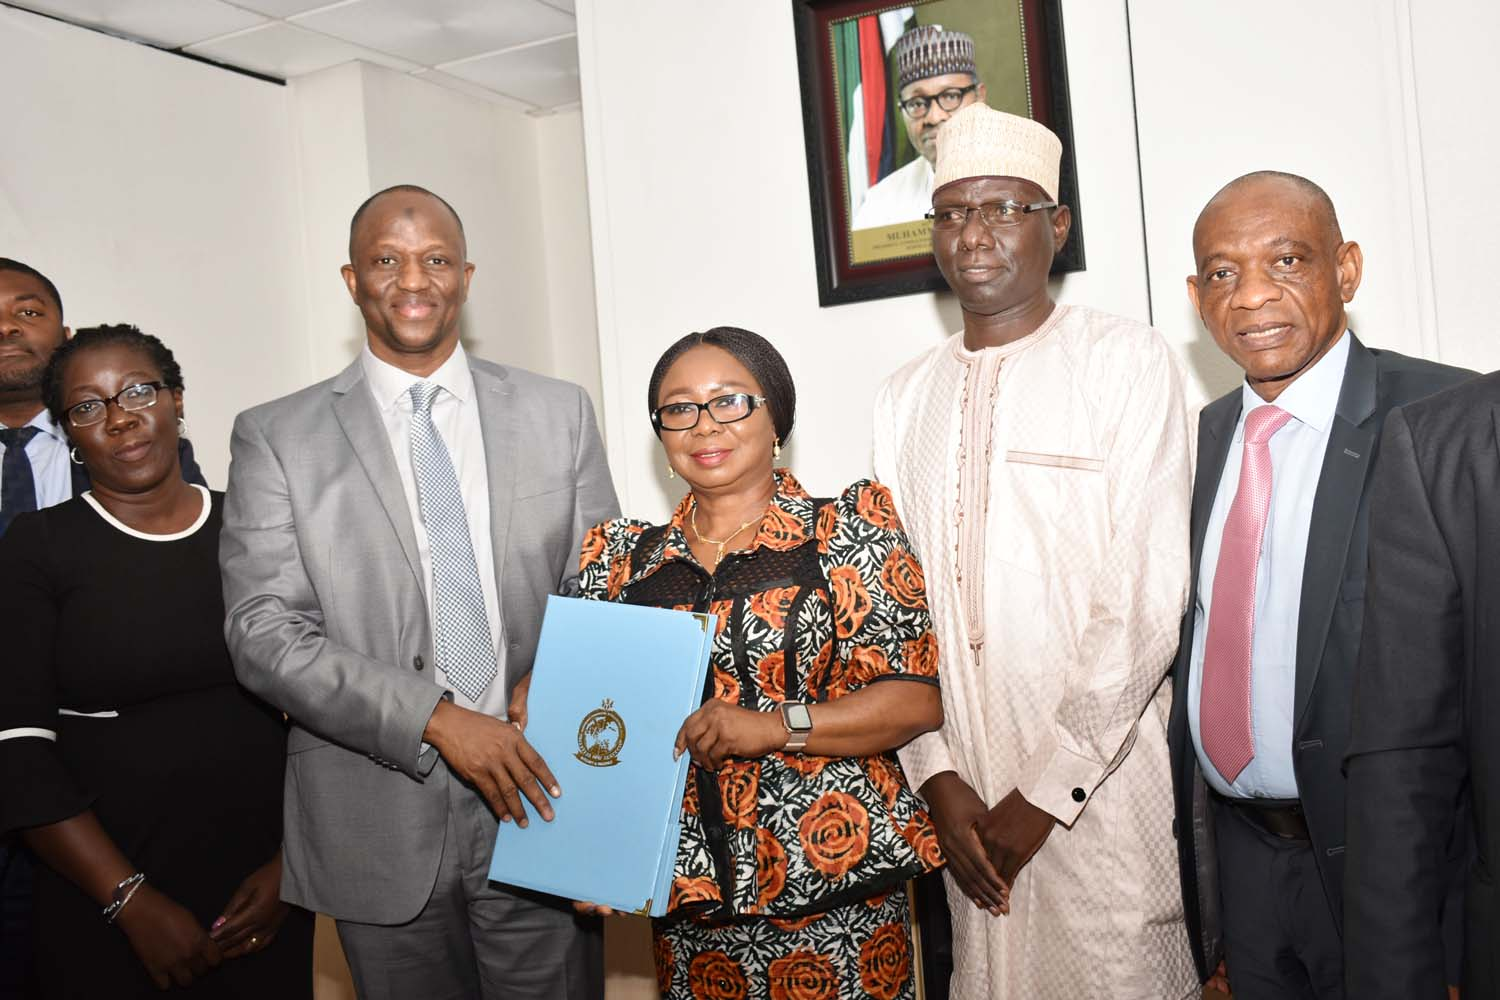 SEC, 3,  L-R, Associate Director, Analysis and Compliance, Nigerian Financial Intelligence Unit Mrs Fehintola Salisu, Director NFIU, Mr Modibbo Tukur, Acting, Director General, Securities and Exchange Commission Ms Mary Uduk, Acting Executive Commissioner, Operations, SEC  Mr Isyaku Tilde and Acting Executive Commissioner, Corporate Services , SEC Mr Henry Roland during a Meeting between SEC and NFIU in Abuja, Wednesday